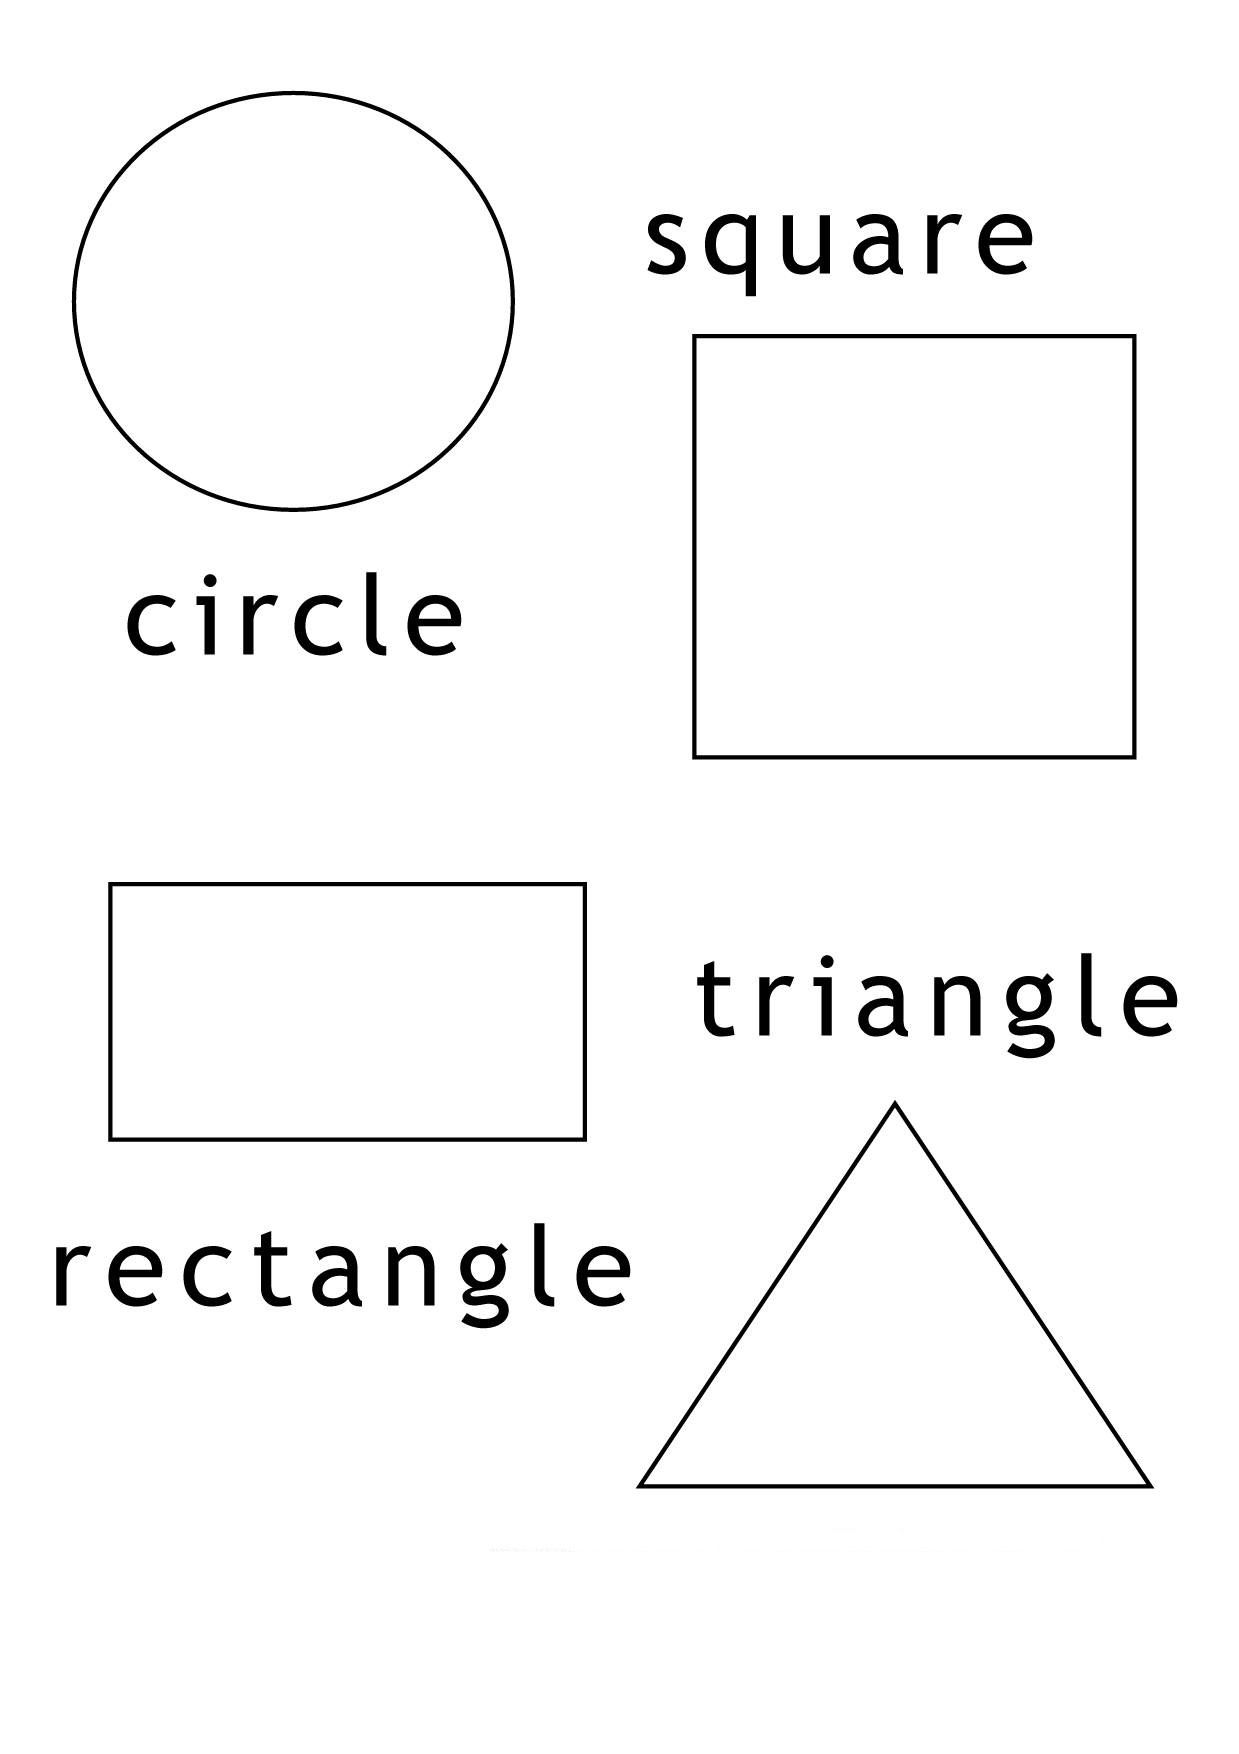 coloring simple shapes free printable geometric coloring pages for adults coloring simple shapes